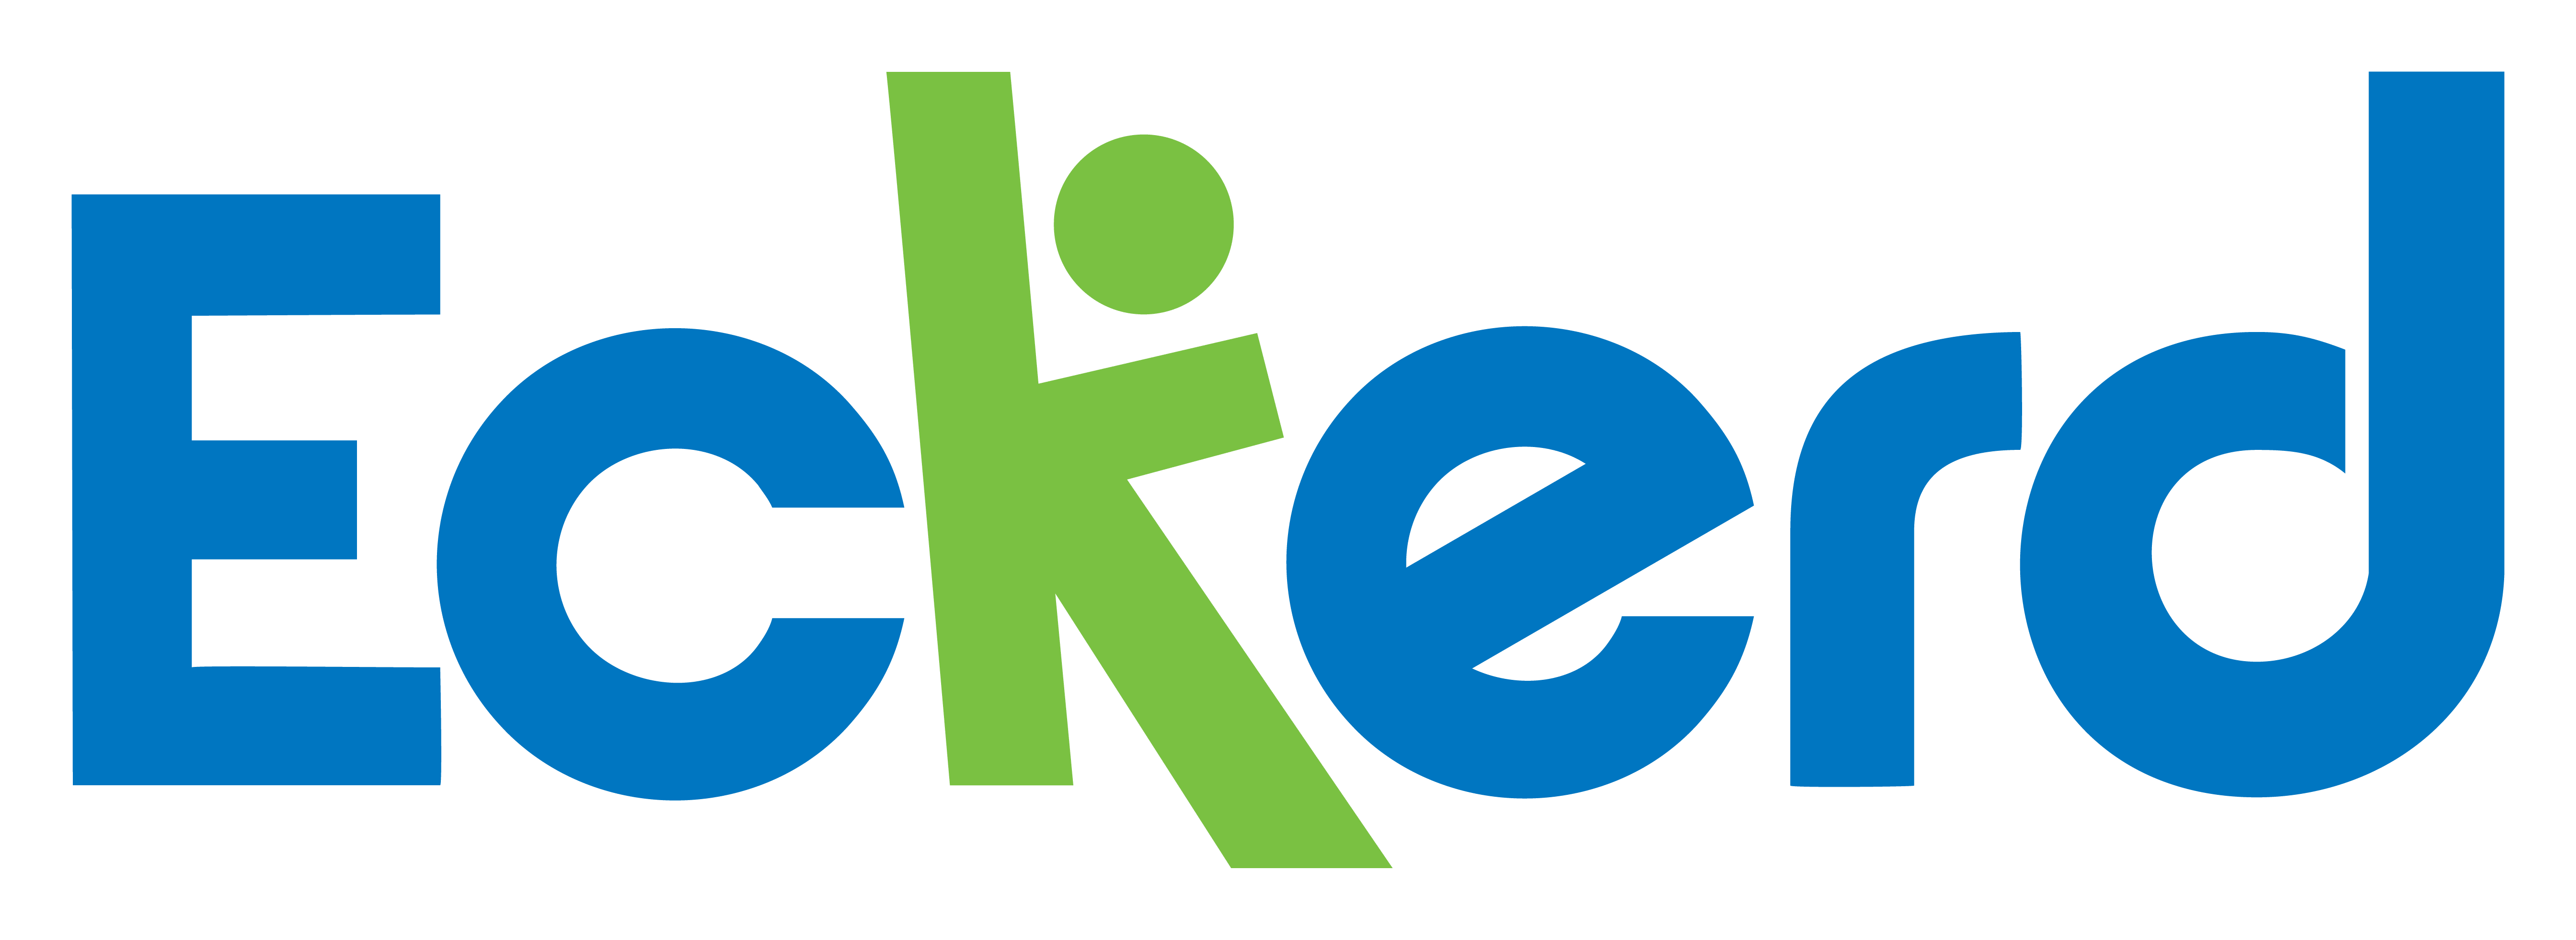 Eckerd Youth Services